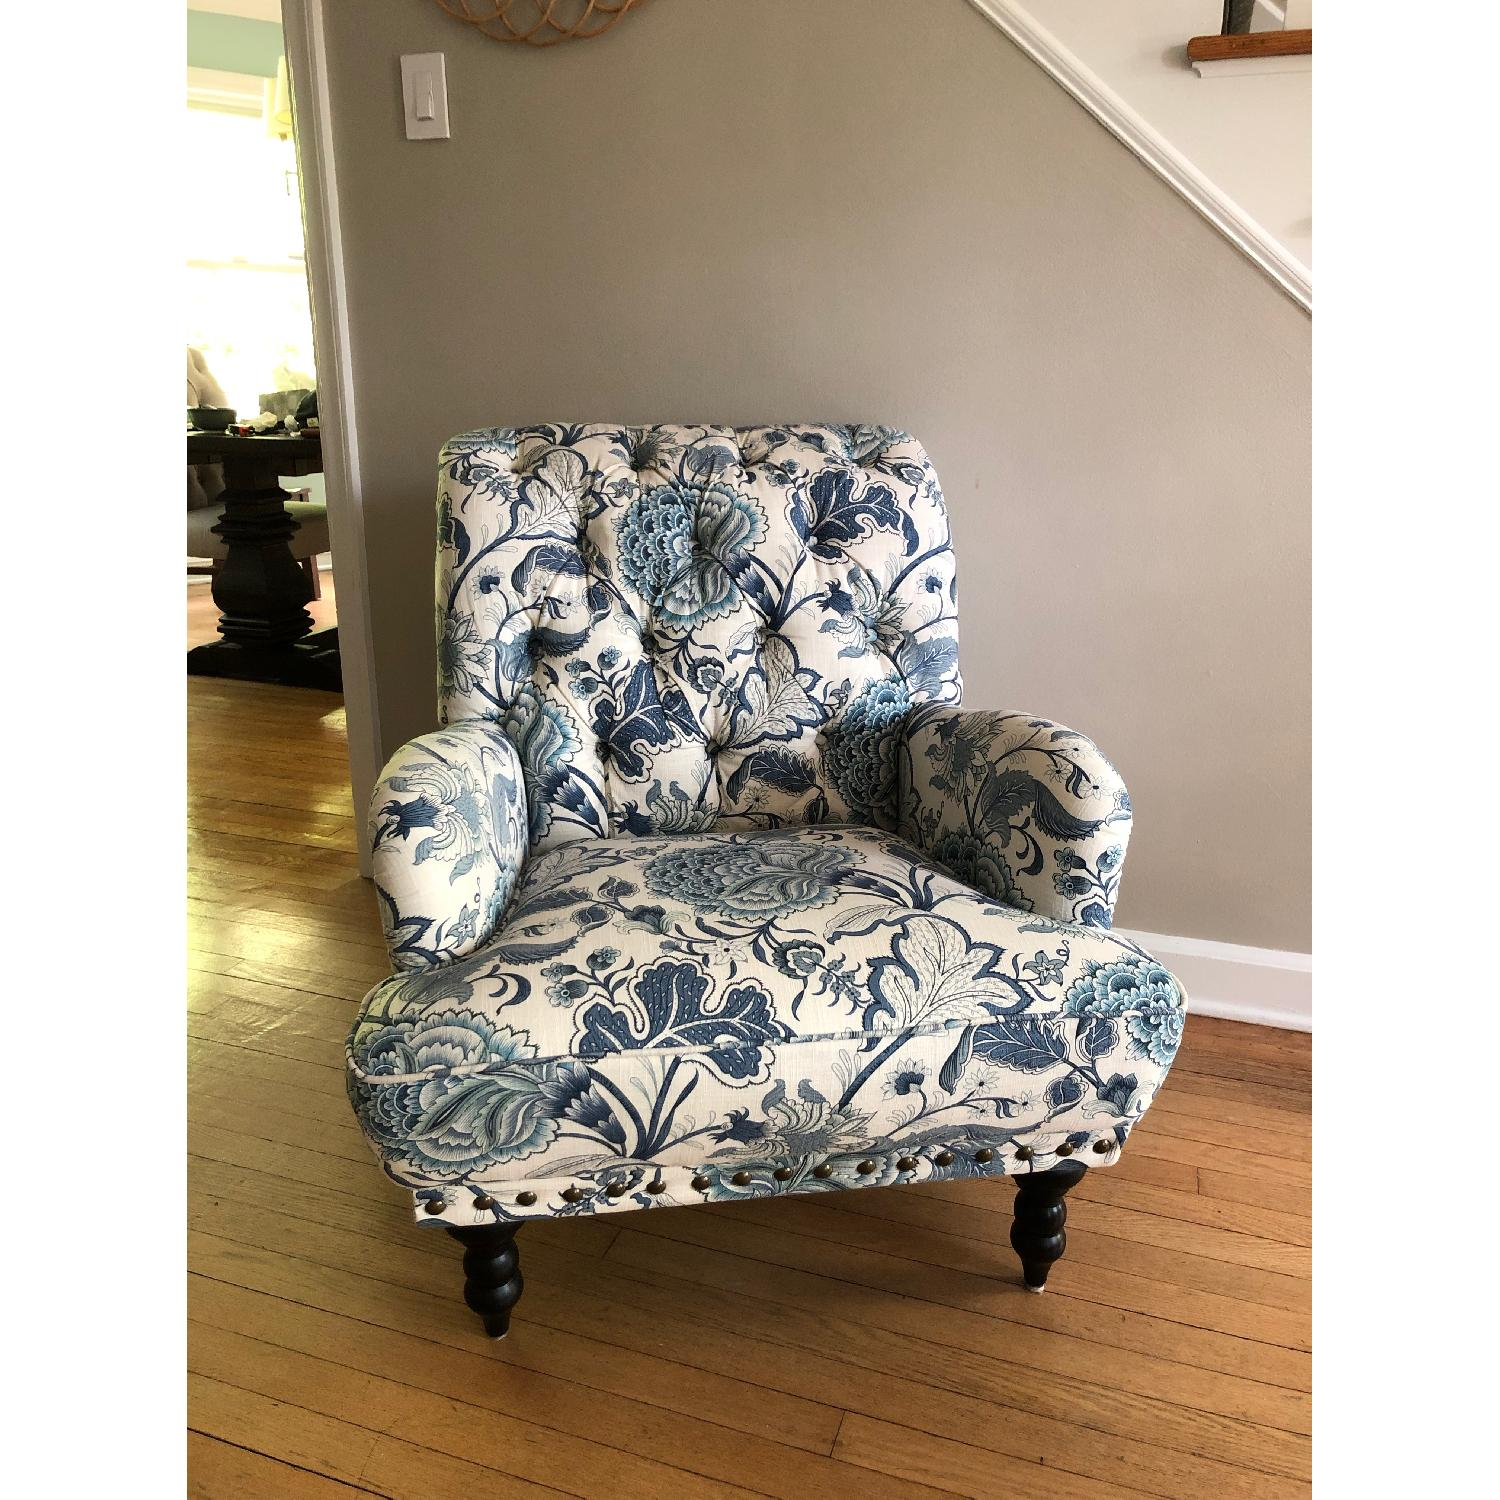 Pier 1 Chas Indigo Blue Floral Chairs - image-2